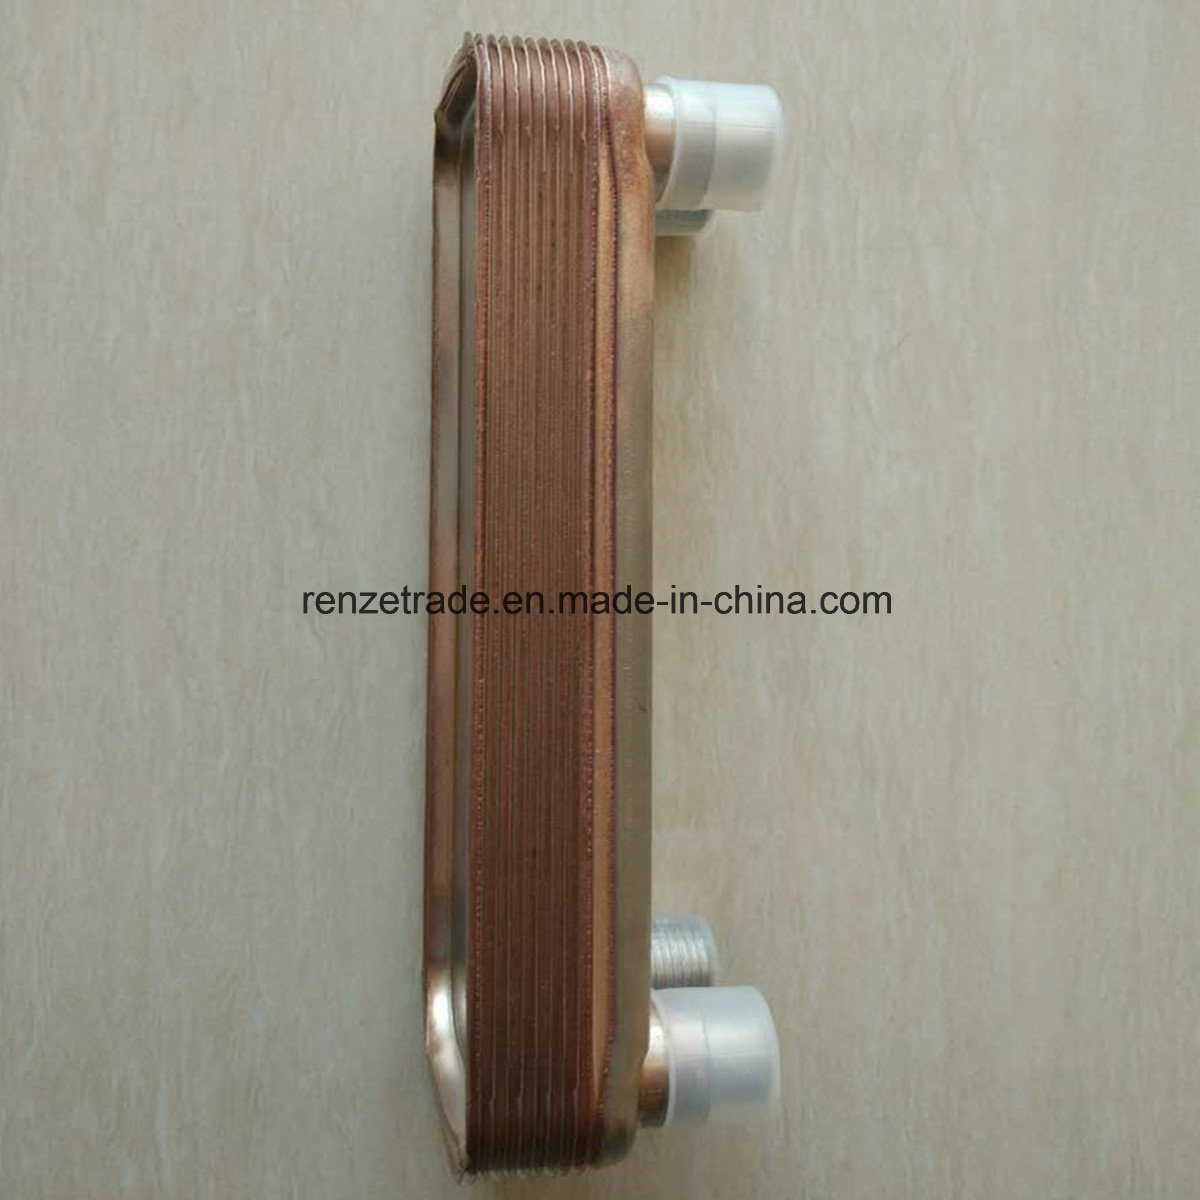 High Quality China Supplier for Industrial Refrigerant/Water Cooling Brazed Plate Heat Exchanger